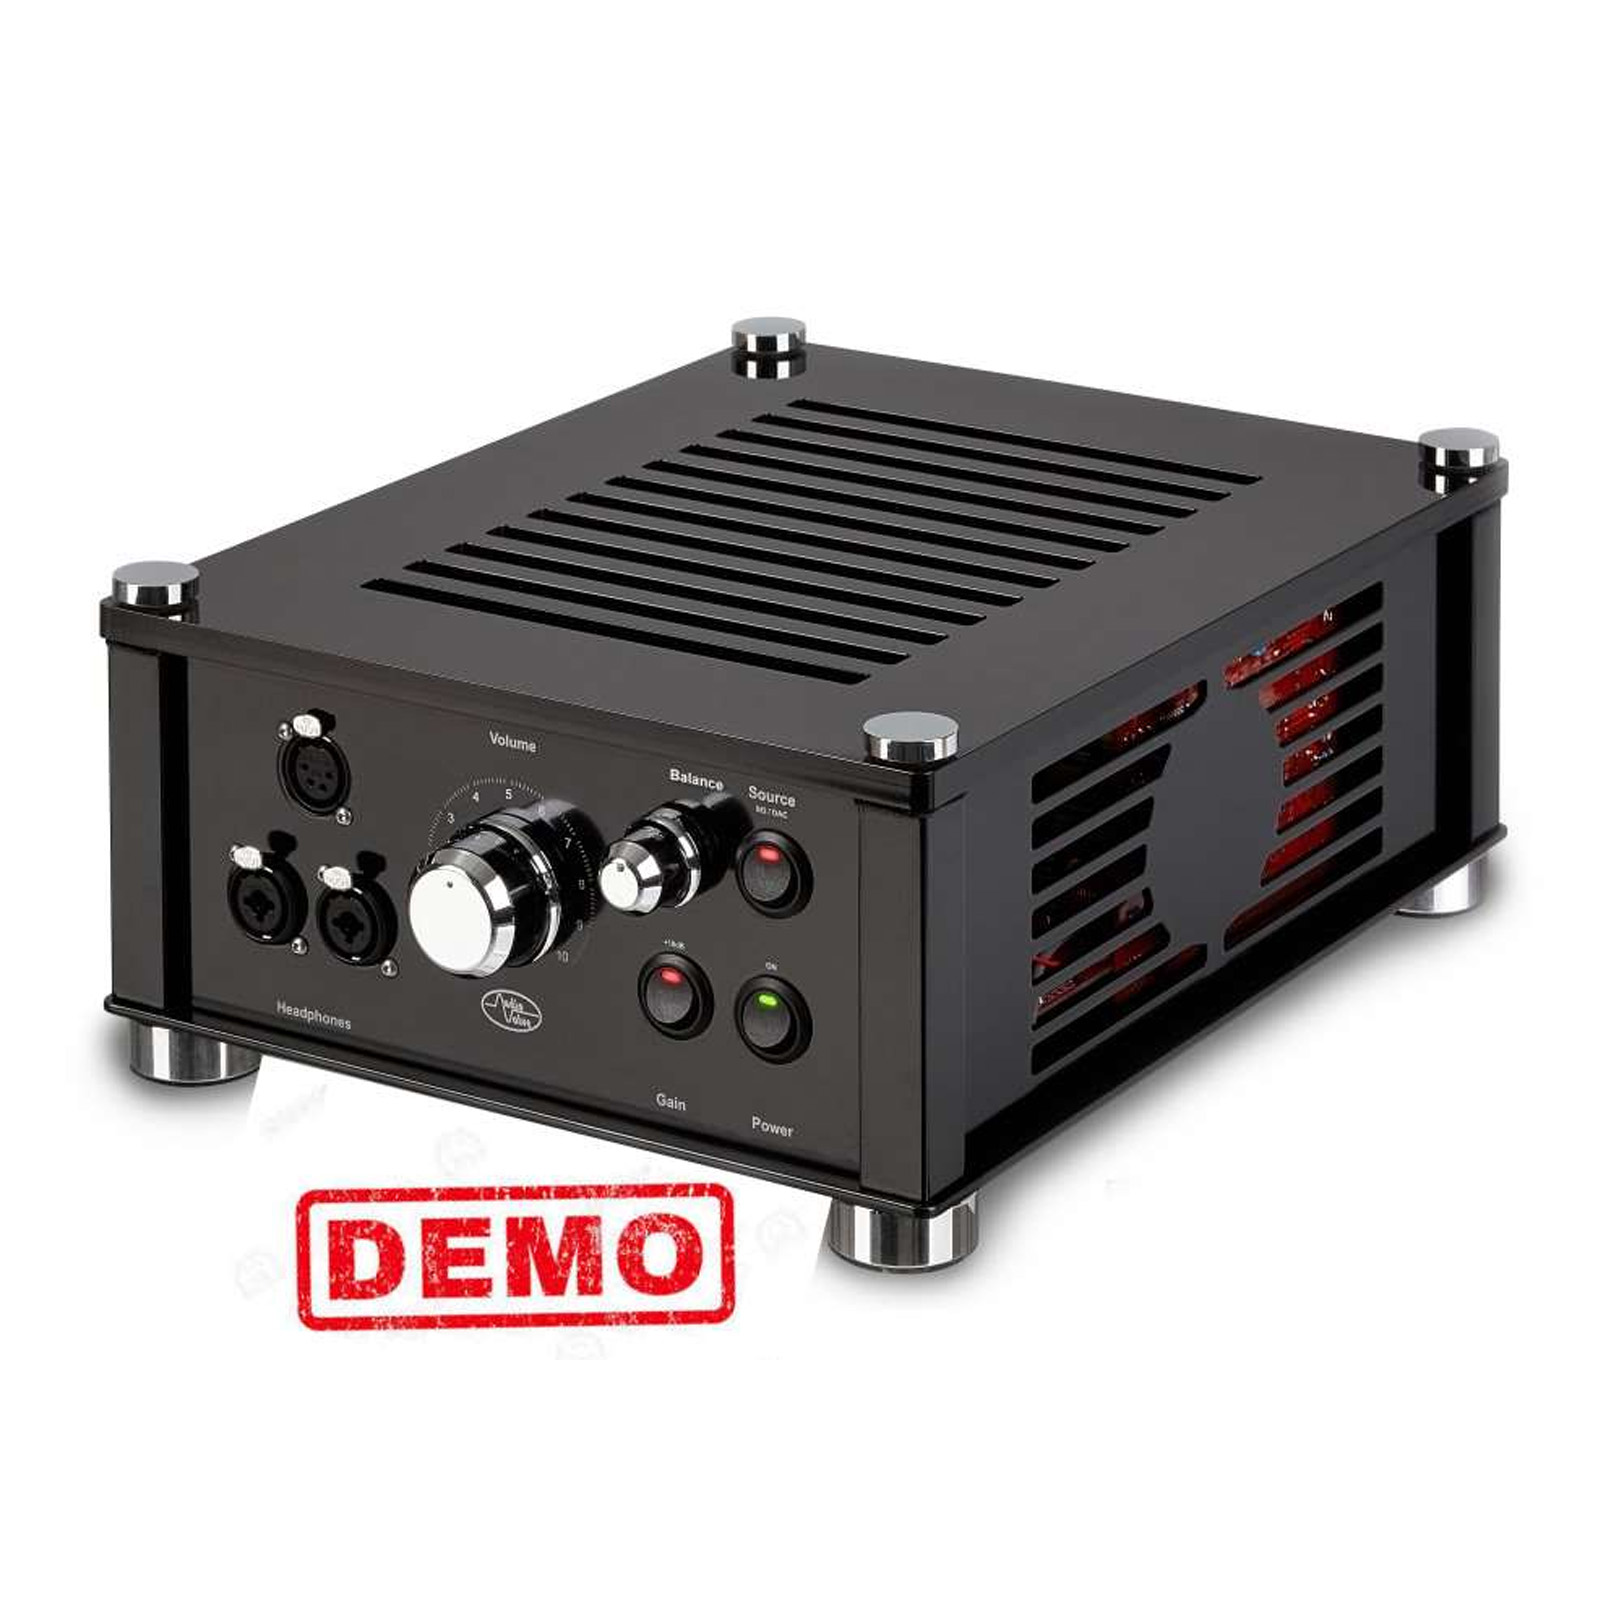 Demo amps